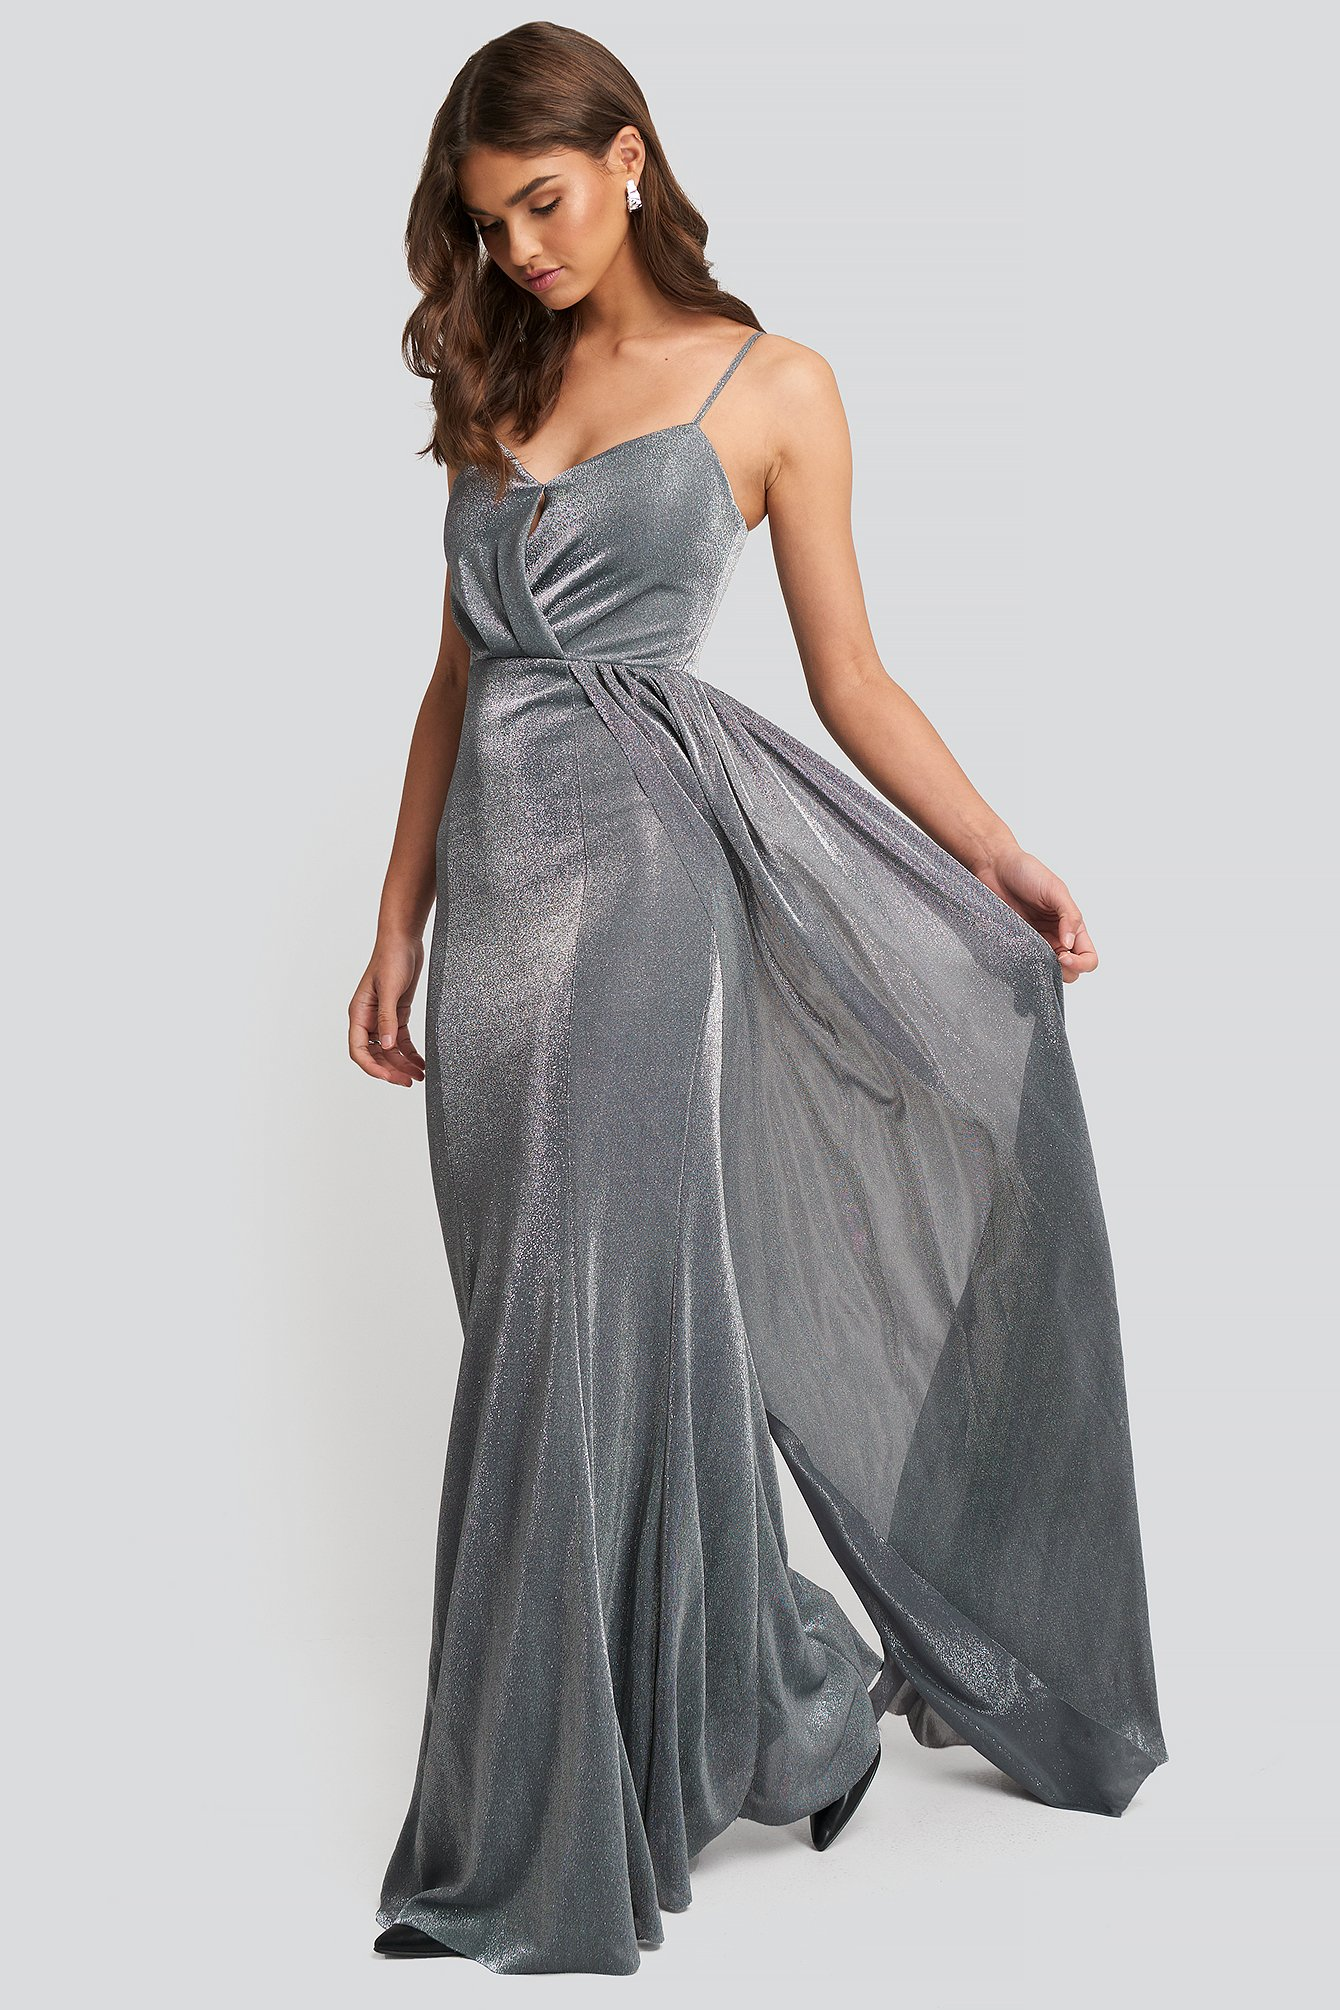 Silver Drape Detailed Evening Dress Silber by Trendyol